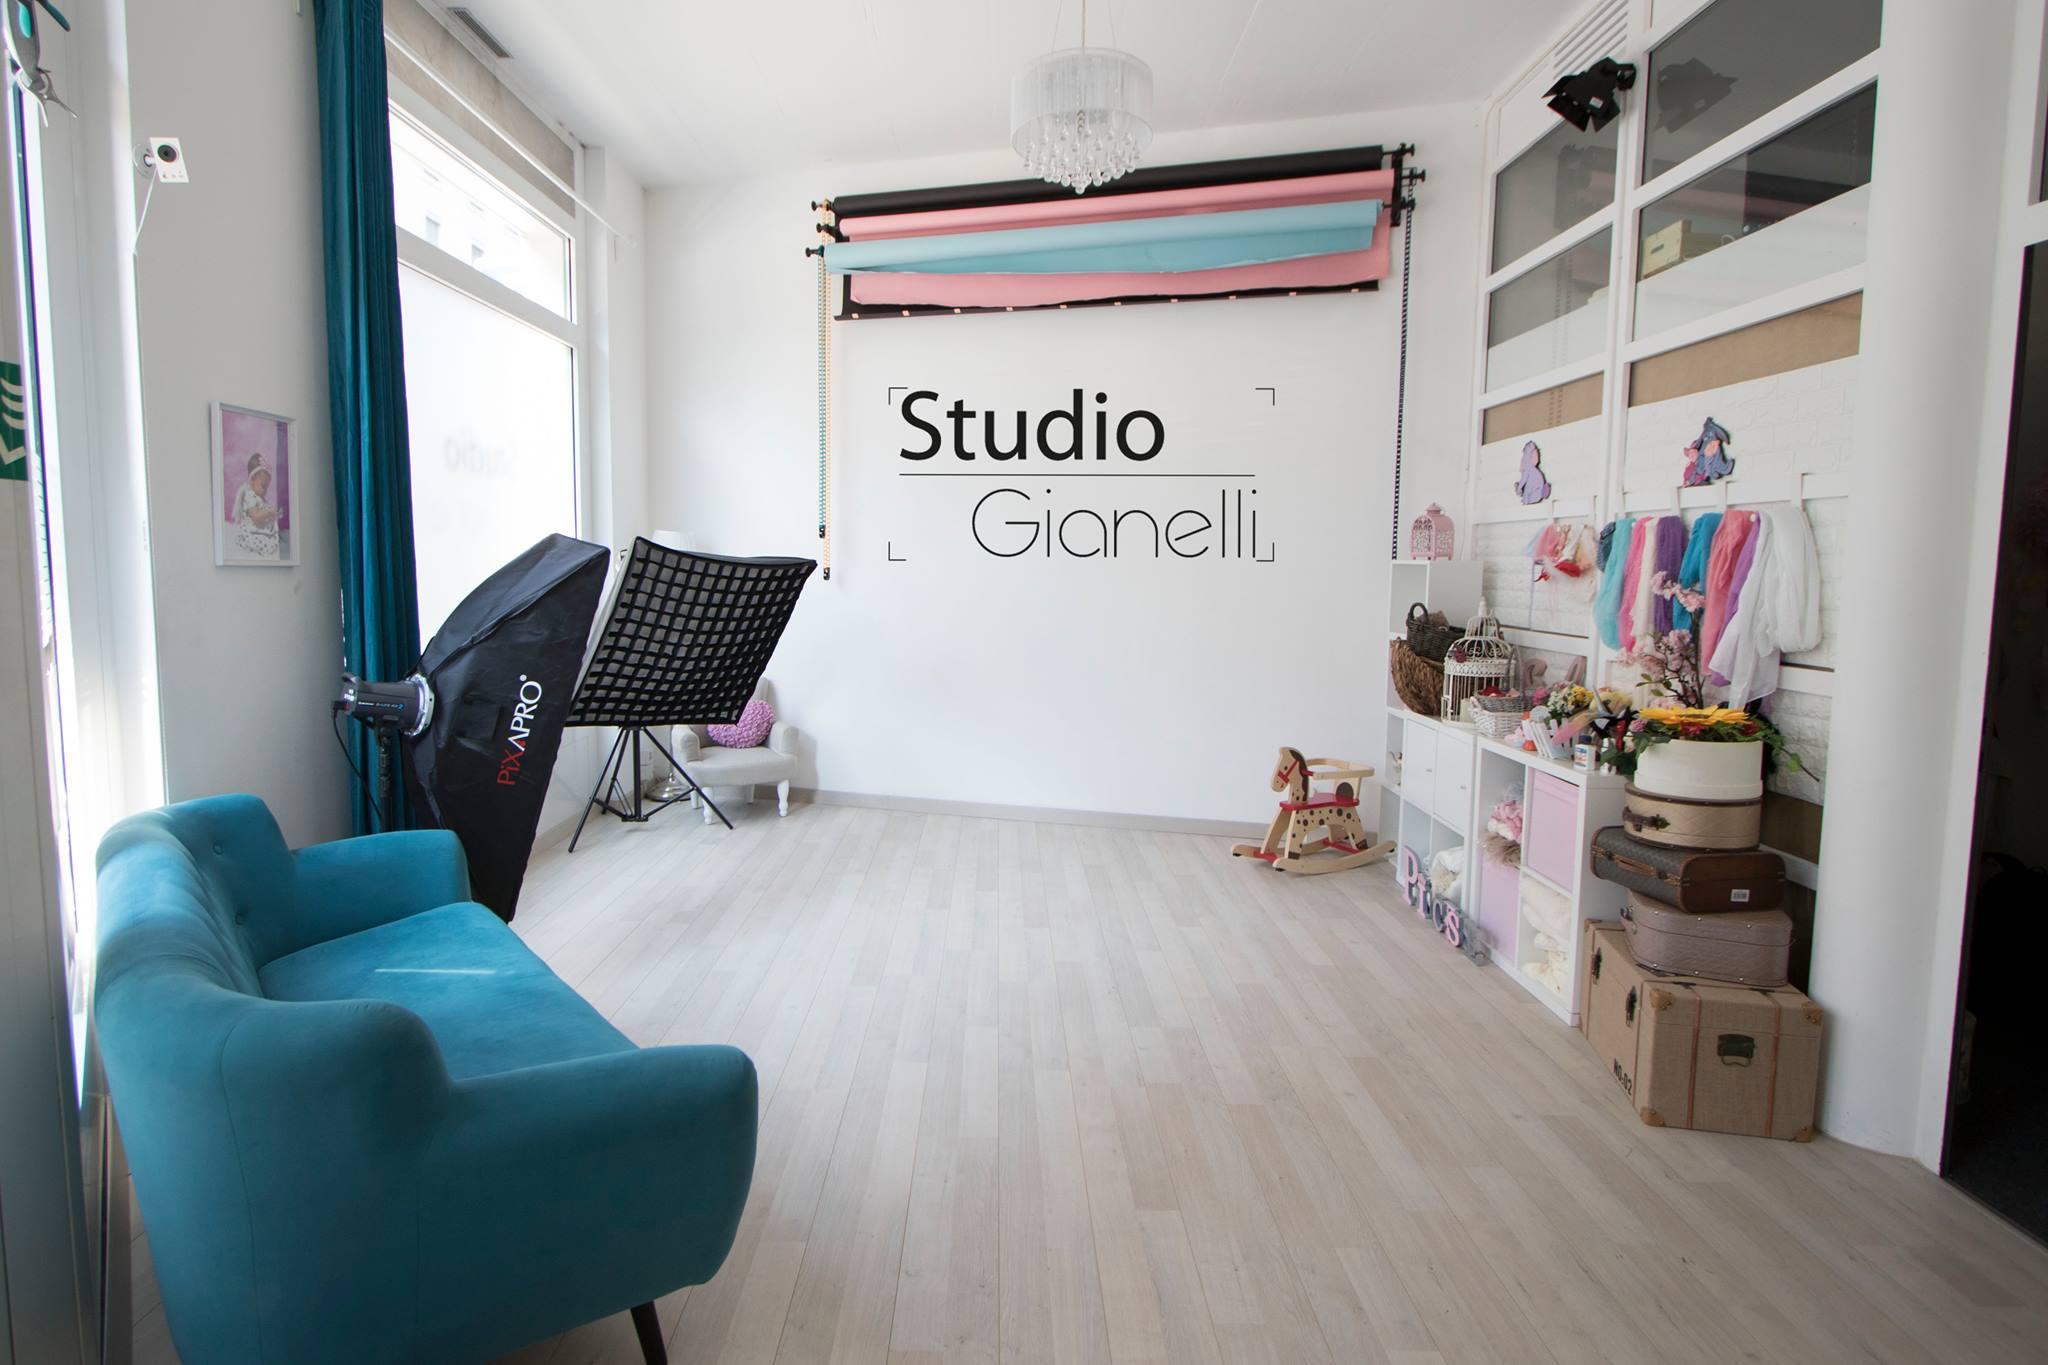 Recommended by 100% of BuyClubbers Who Tried It